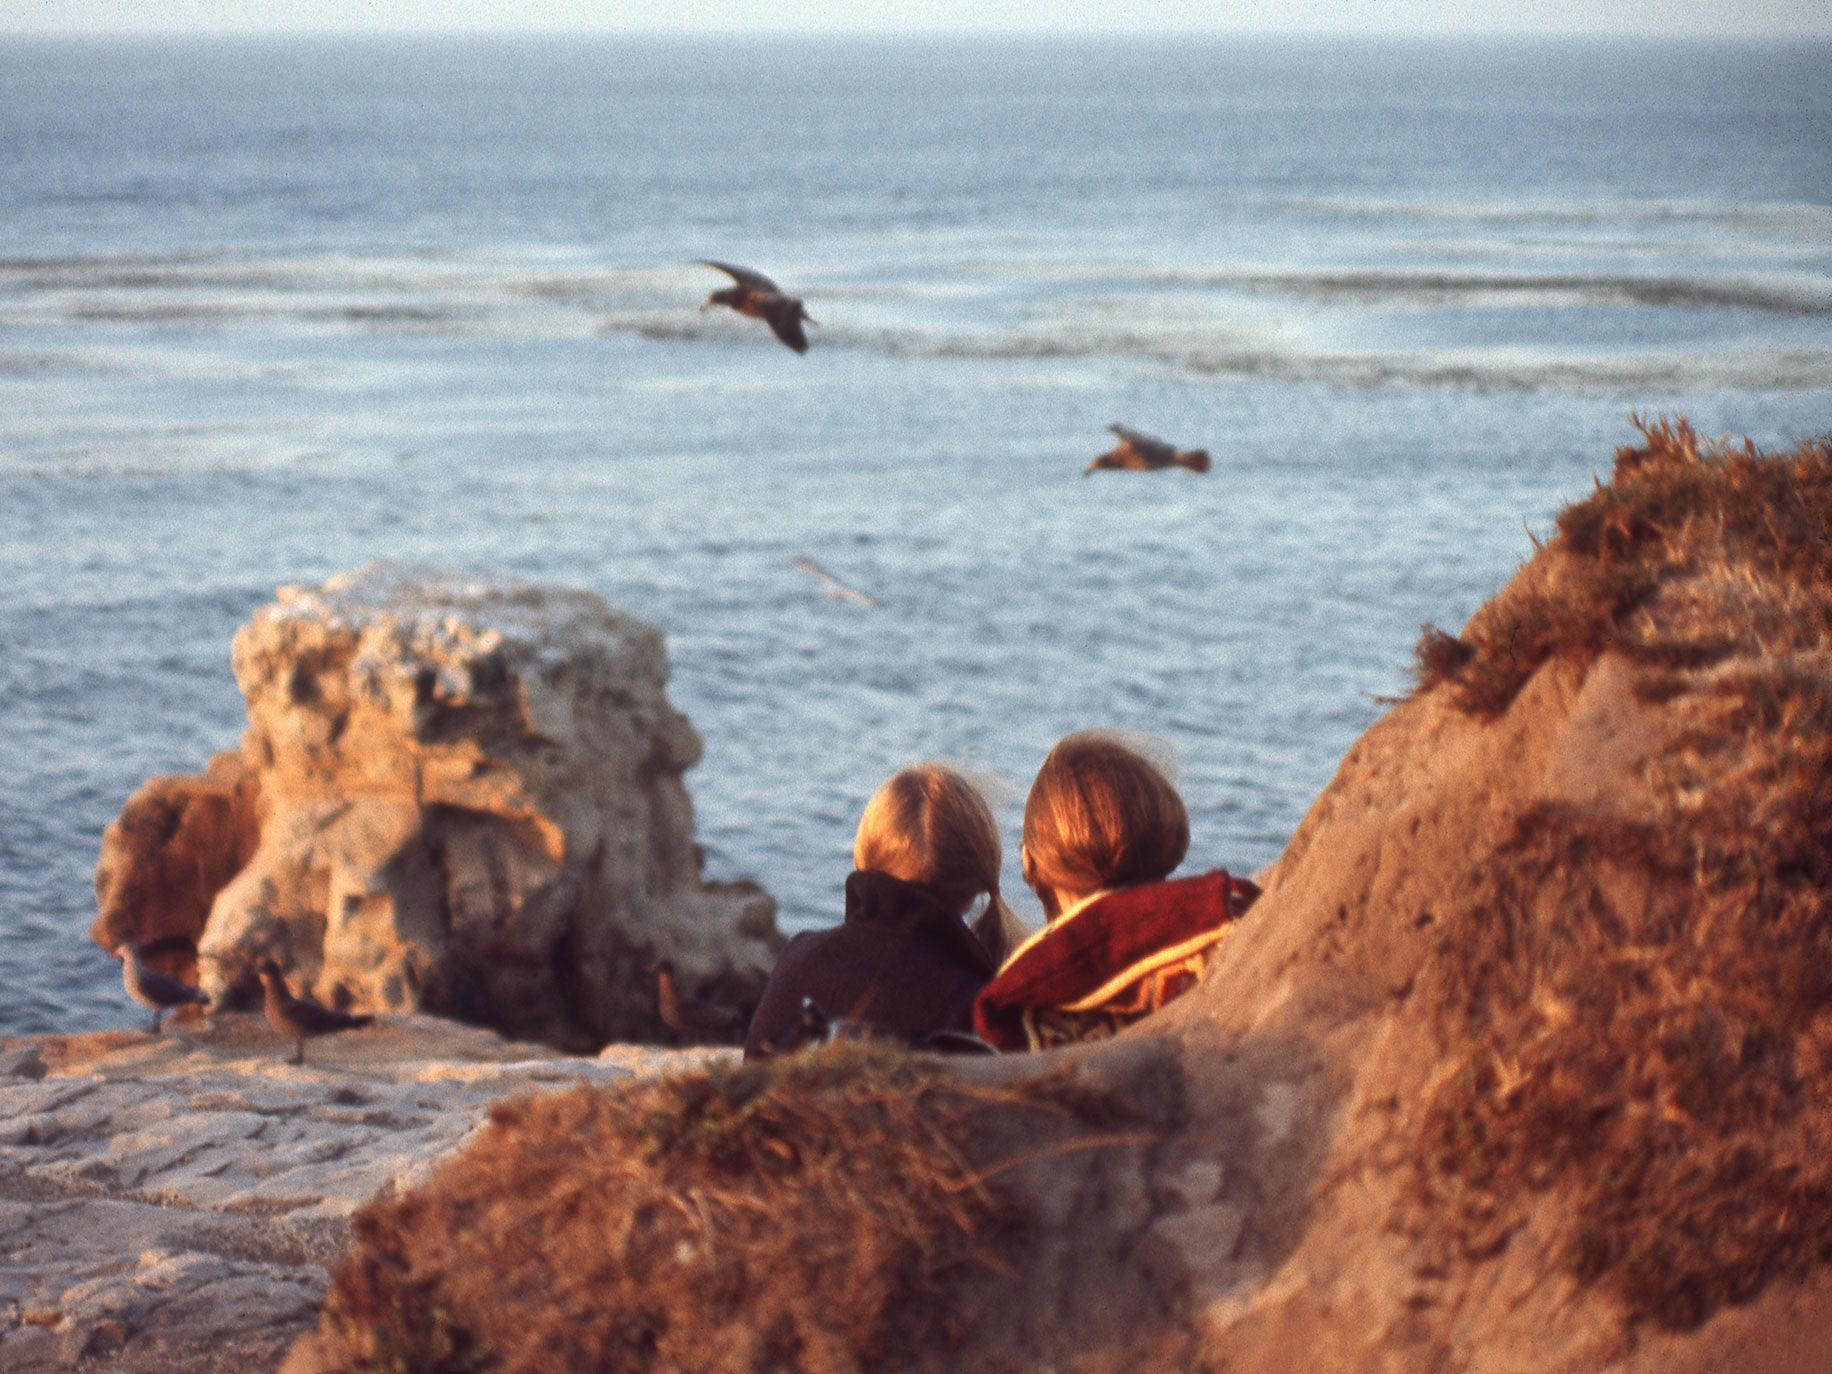 Sunset on the beach in Santa Cruz, California, 1970. The photograph is from Roger Steffens's The Family Acid: California, which looks back at the Golden State from 1968 to 2015.